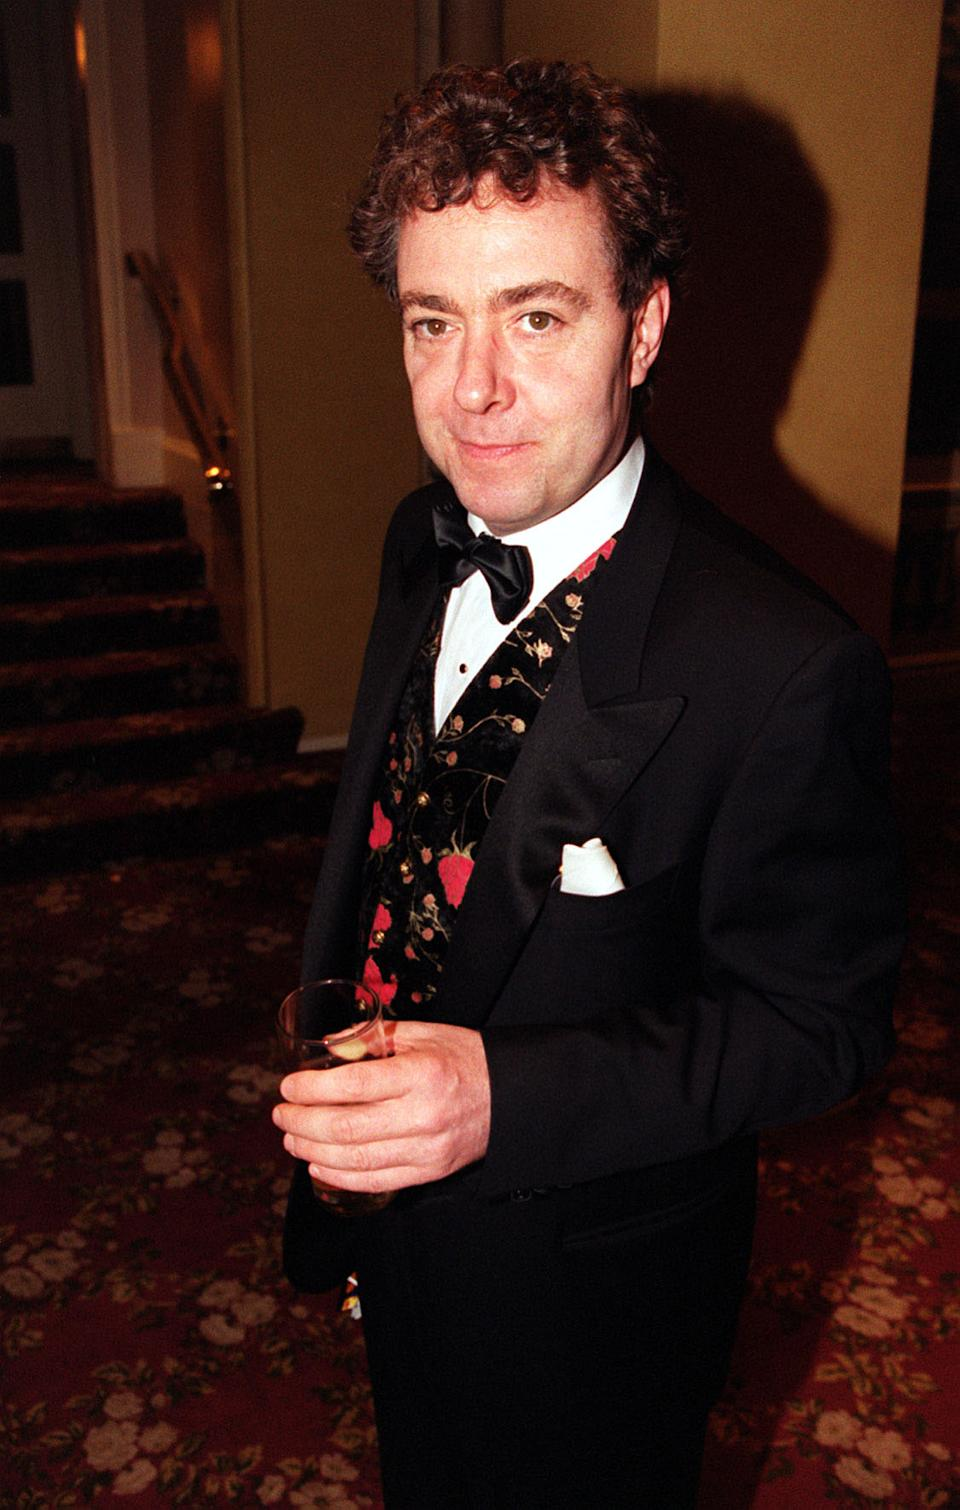 Actor / comedian John Sessions, at the Royal Television Society Programme Awards at London's Grosvenor House Hotel.   (Photo by Peter Jordan - PA Images/PA Images via Getty Images)